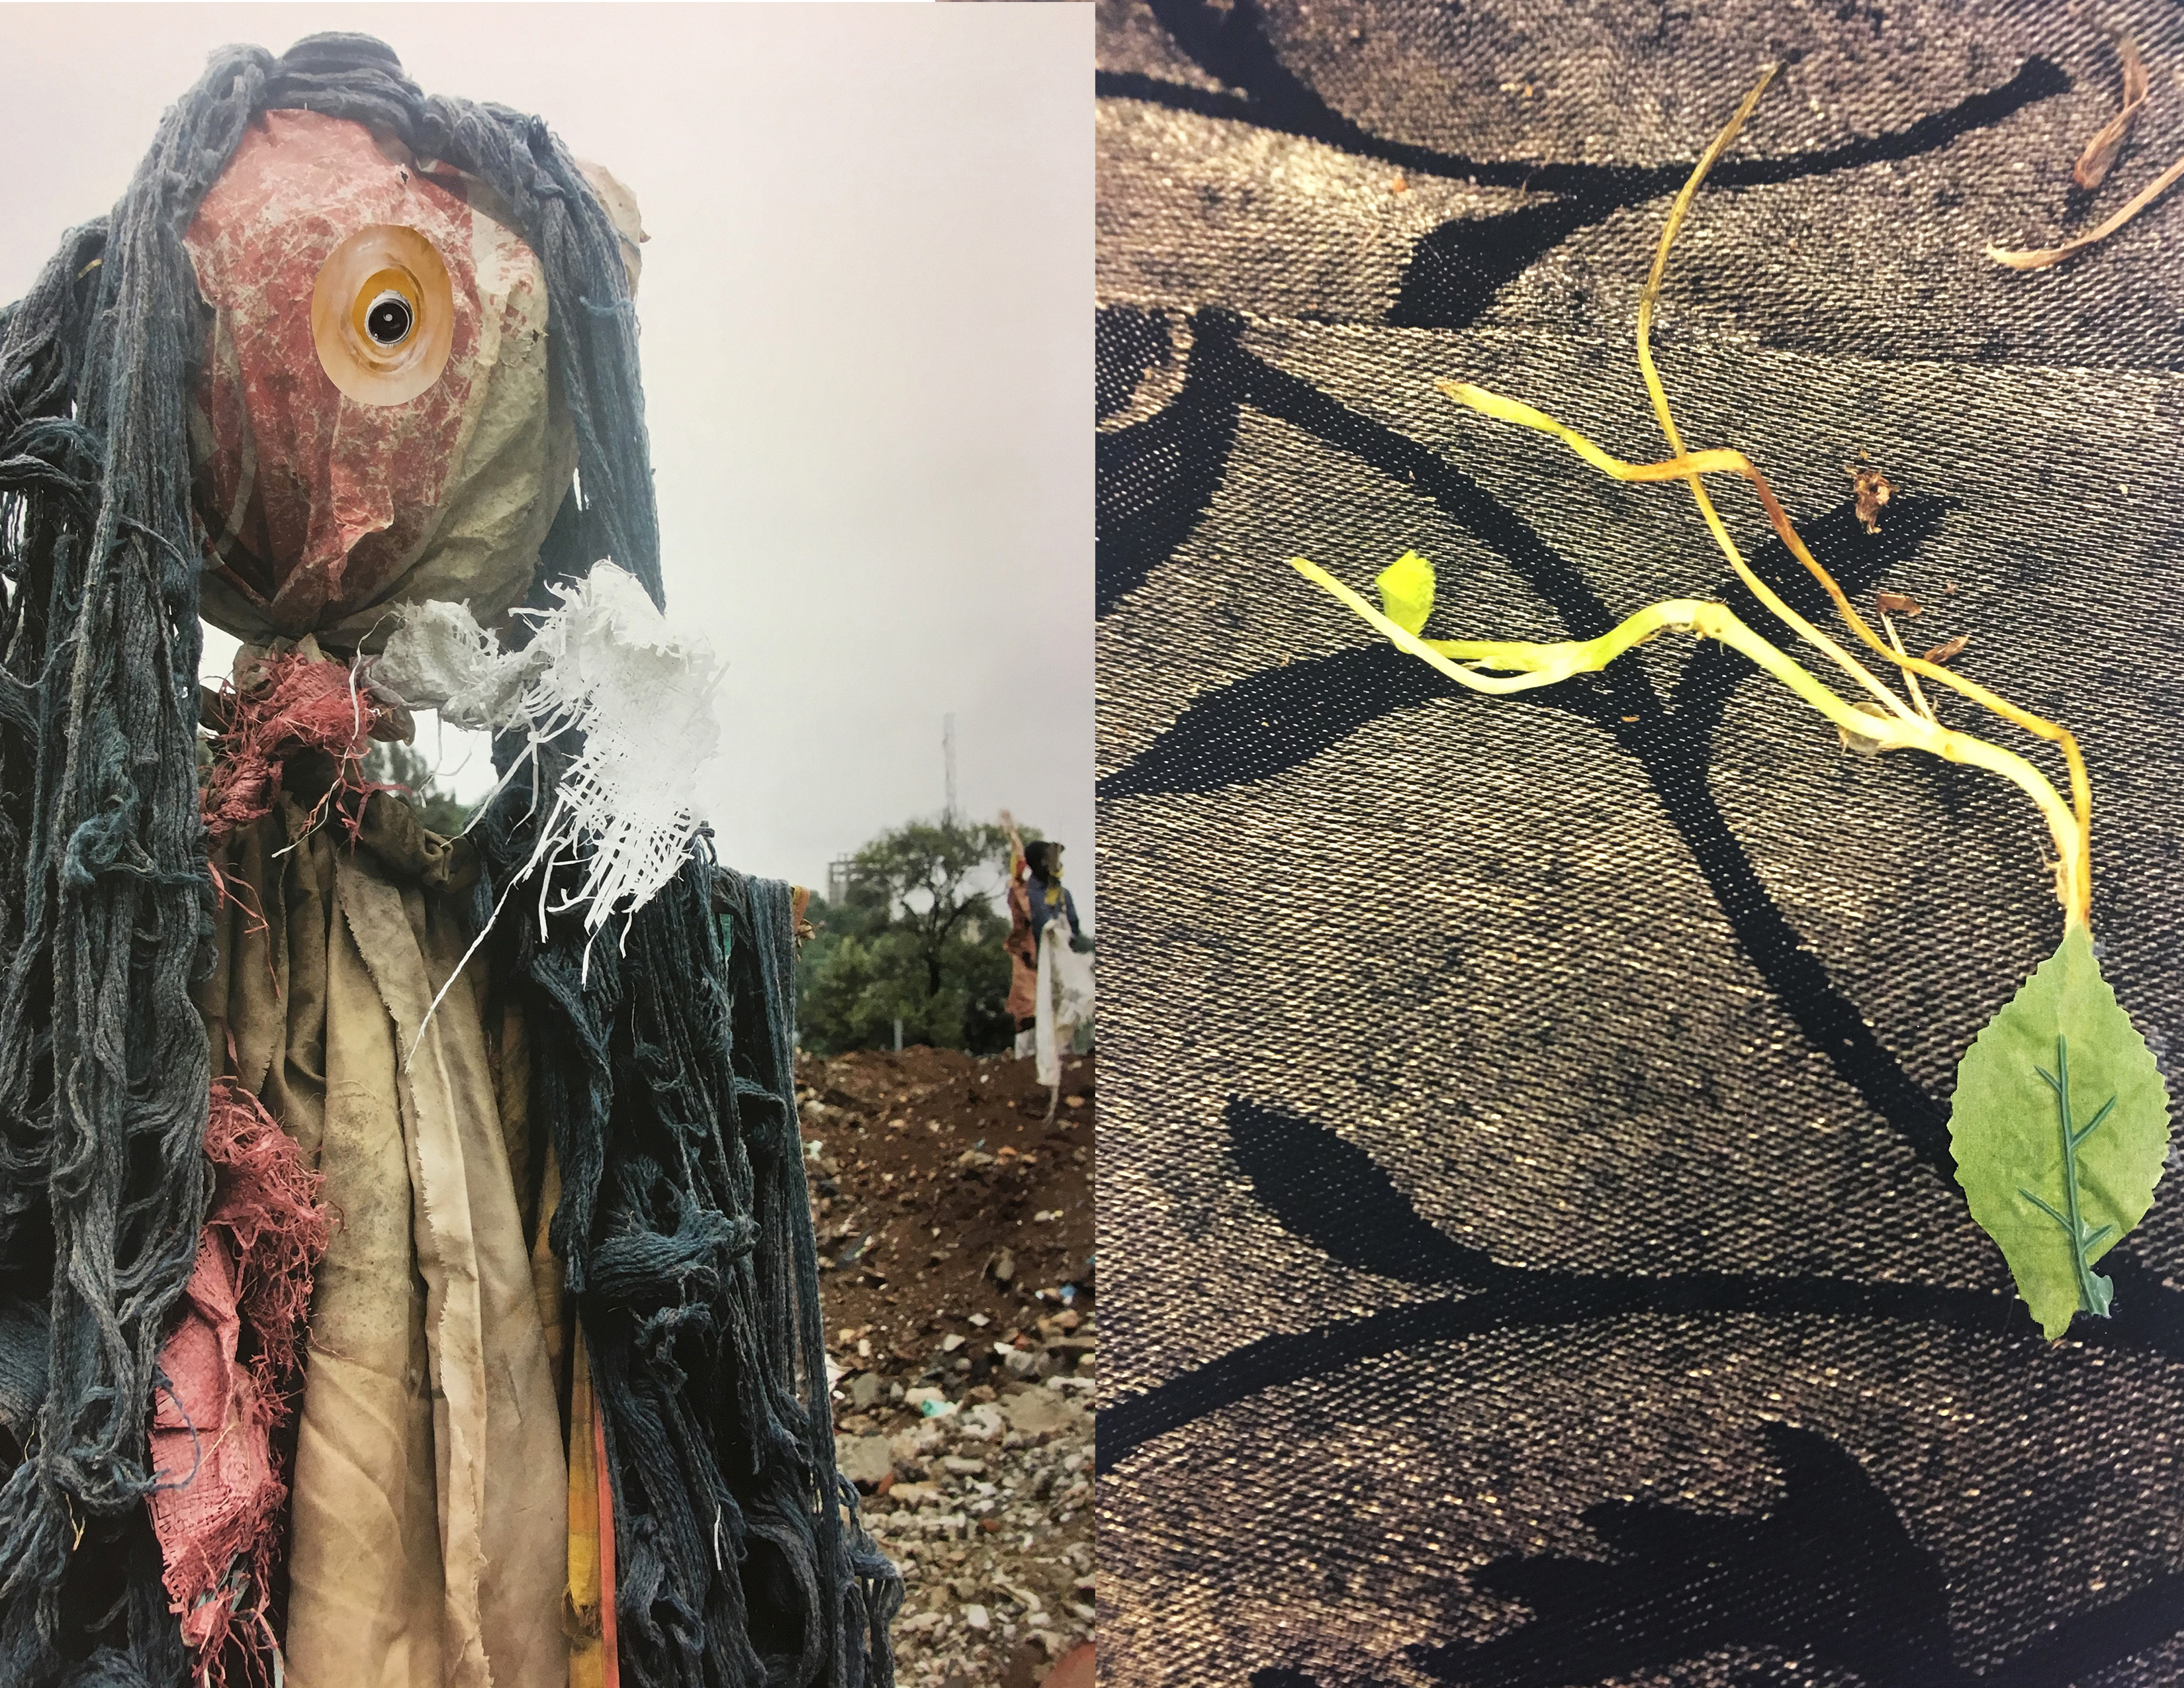 Dymph de Wild, Spirit 1 (photograph of a ragged sculpted scarecrow figure at the edge of a plowed field); Corinne Diop, Leaf/Shoot (photograph of a green shoot and leaf and its shadow against a rock)